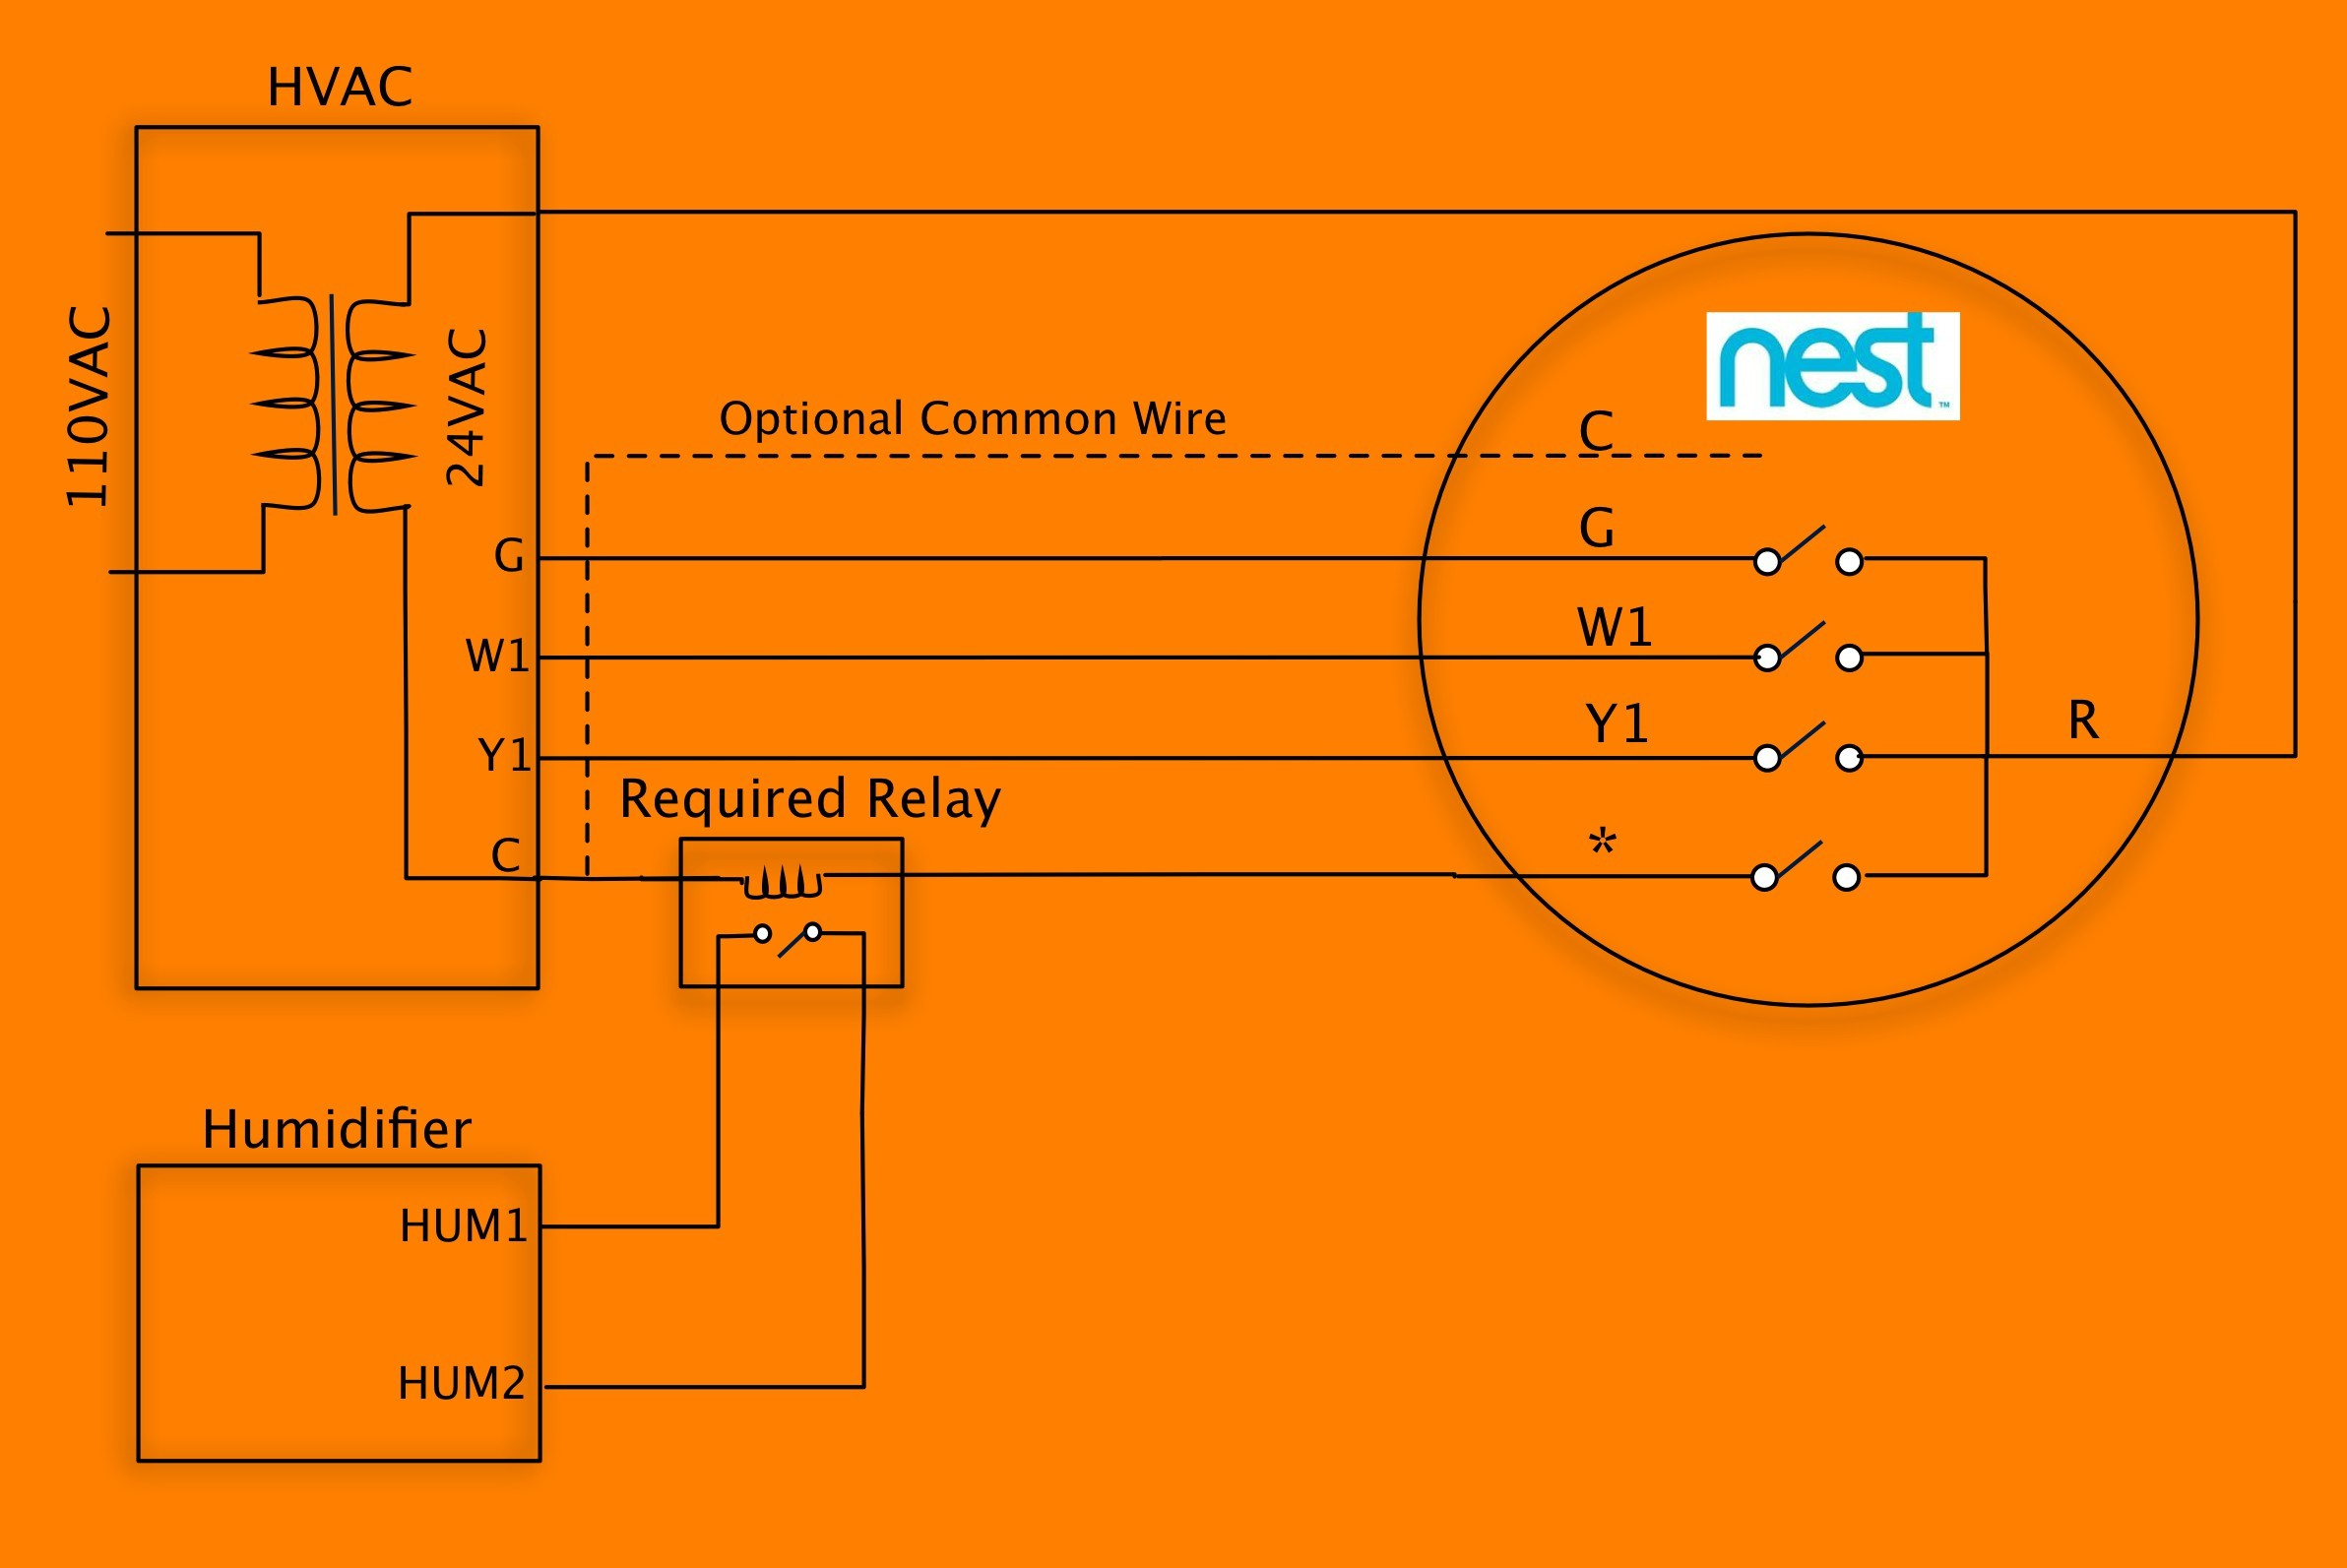 Nest thermostat Wiring Diagram Awesome Nest 3rd Generation Wiring Diagram Diagram Of Nest thermostat Wiring Diagram